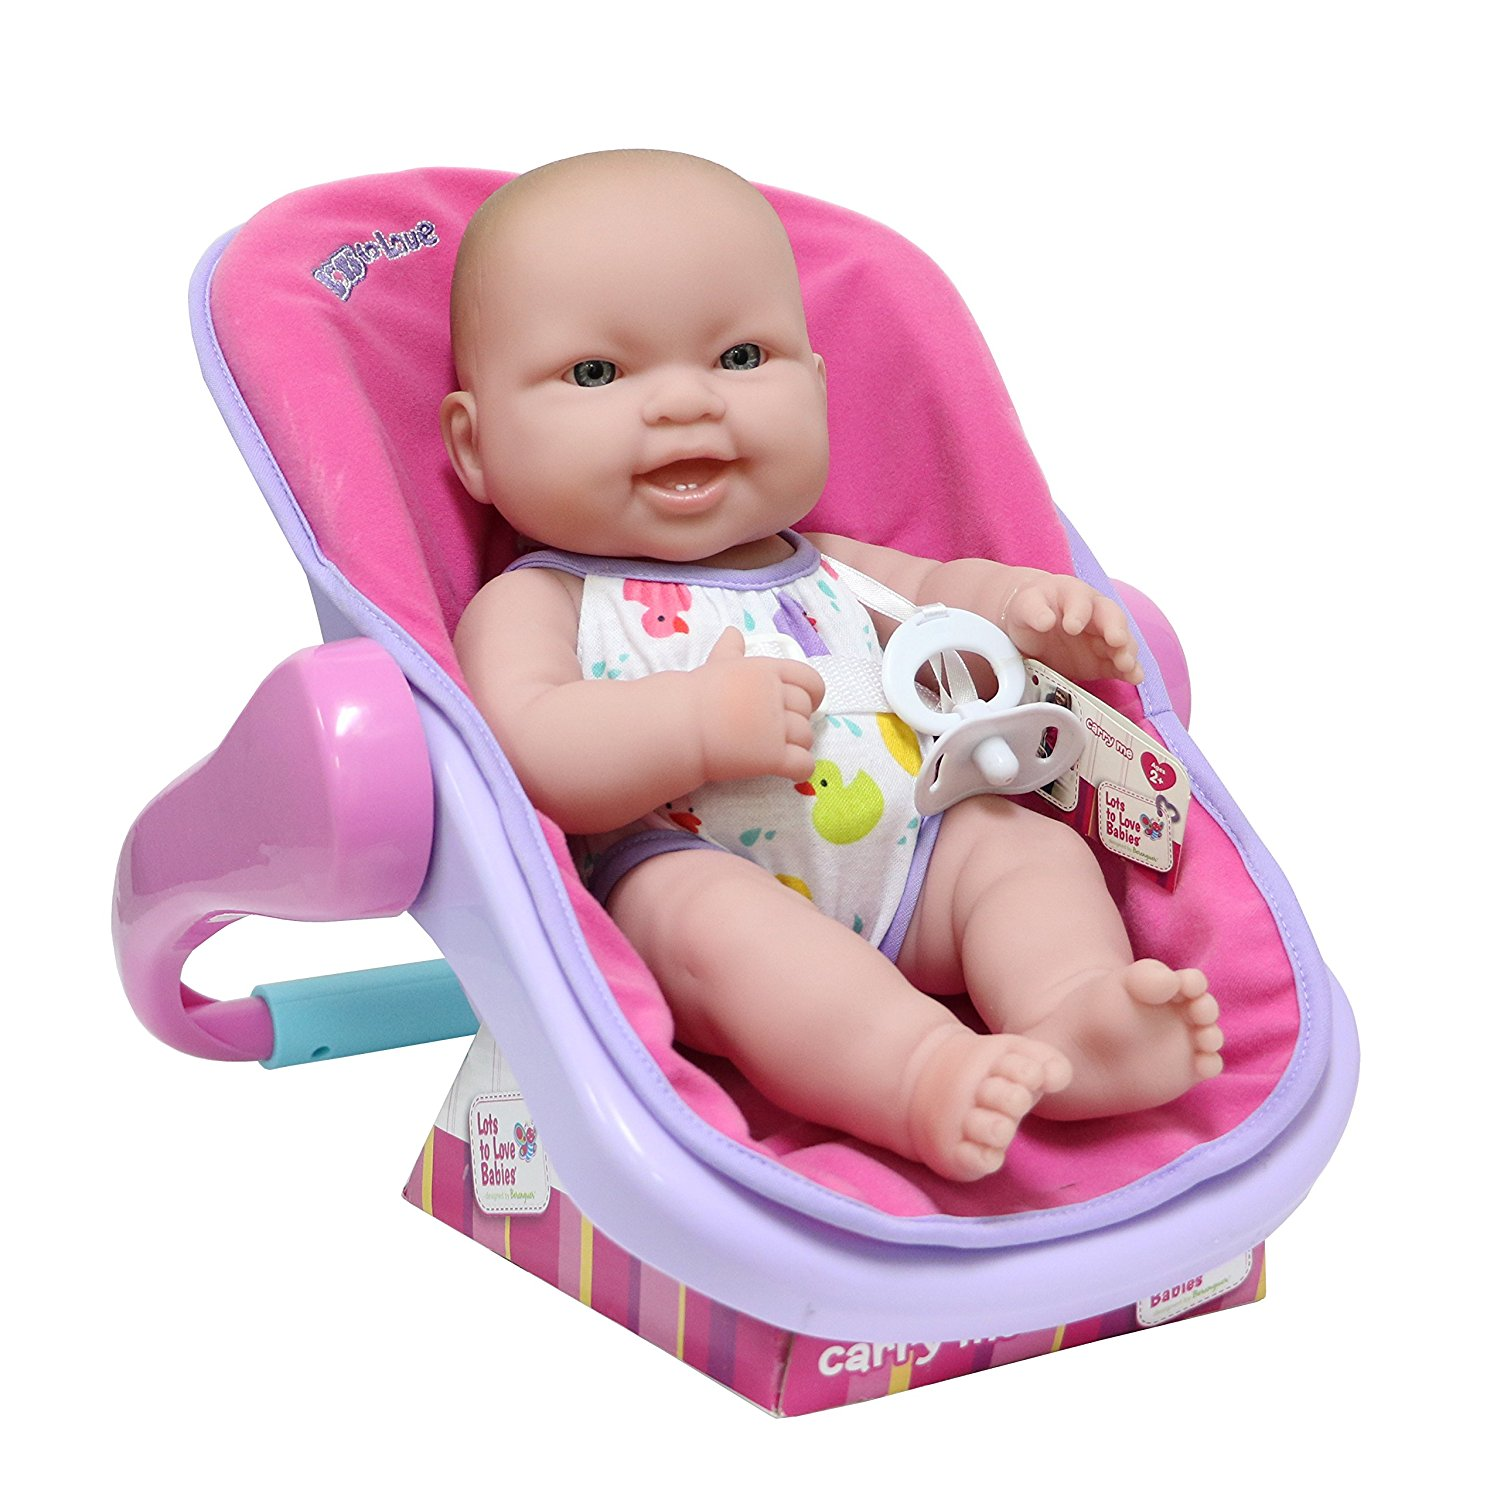 """Lots to Love Babies 14"""" All-Vinyl Baby Doll in multi-position carrier."""